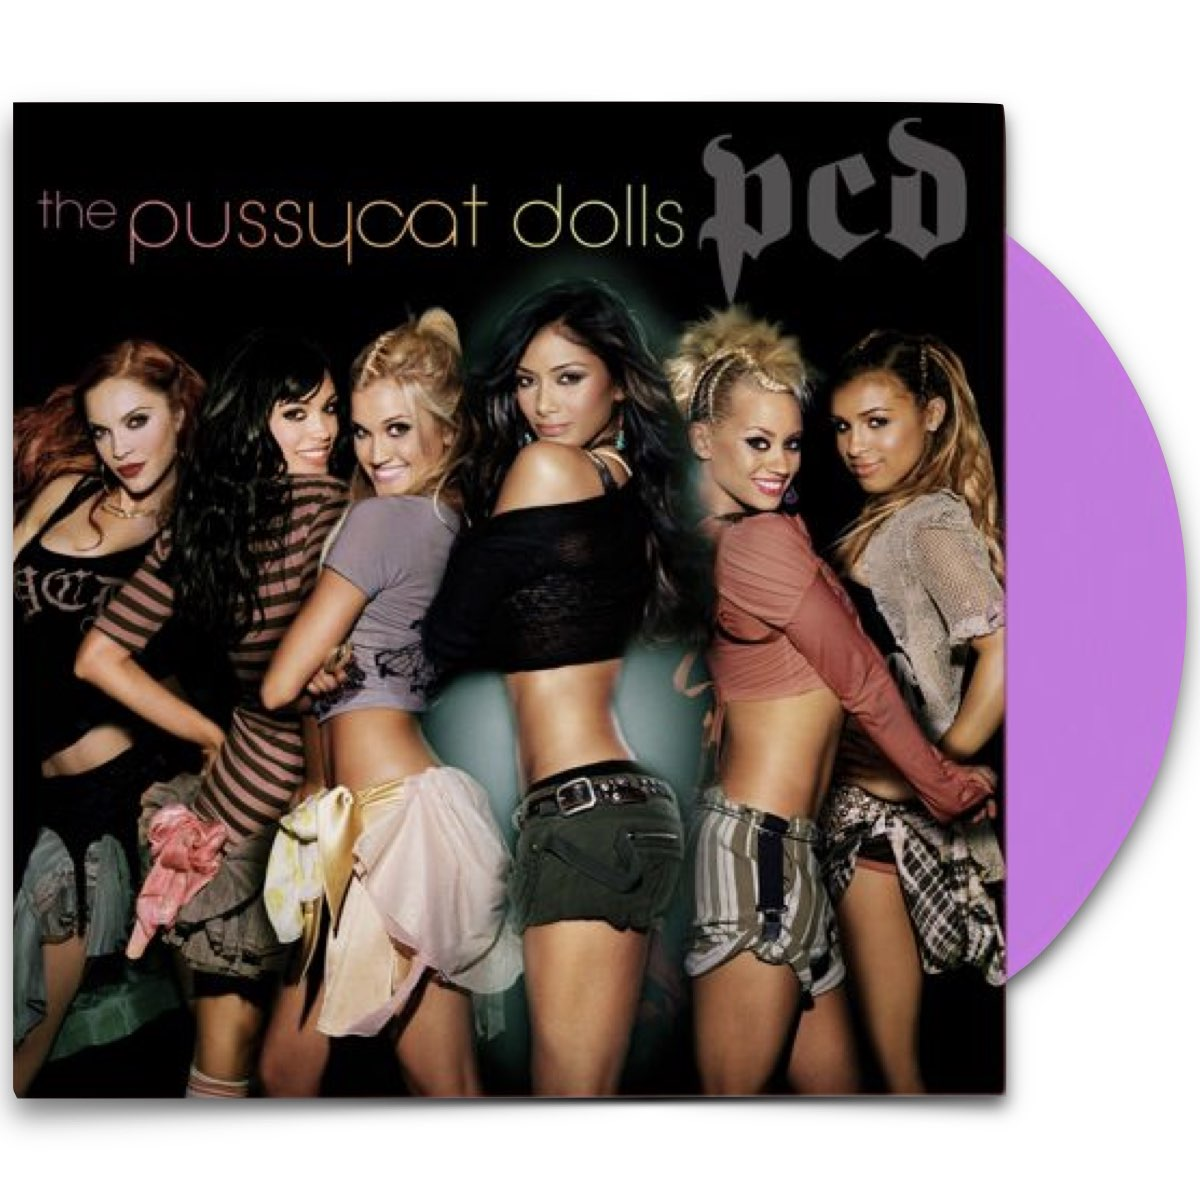 The Pussycat Dolls - PCD [Opaque Violet Vinyl] [Limited Edition]